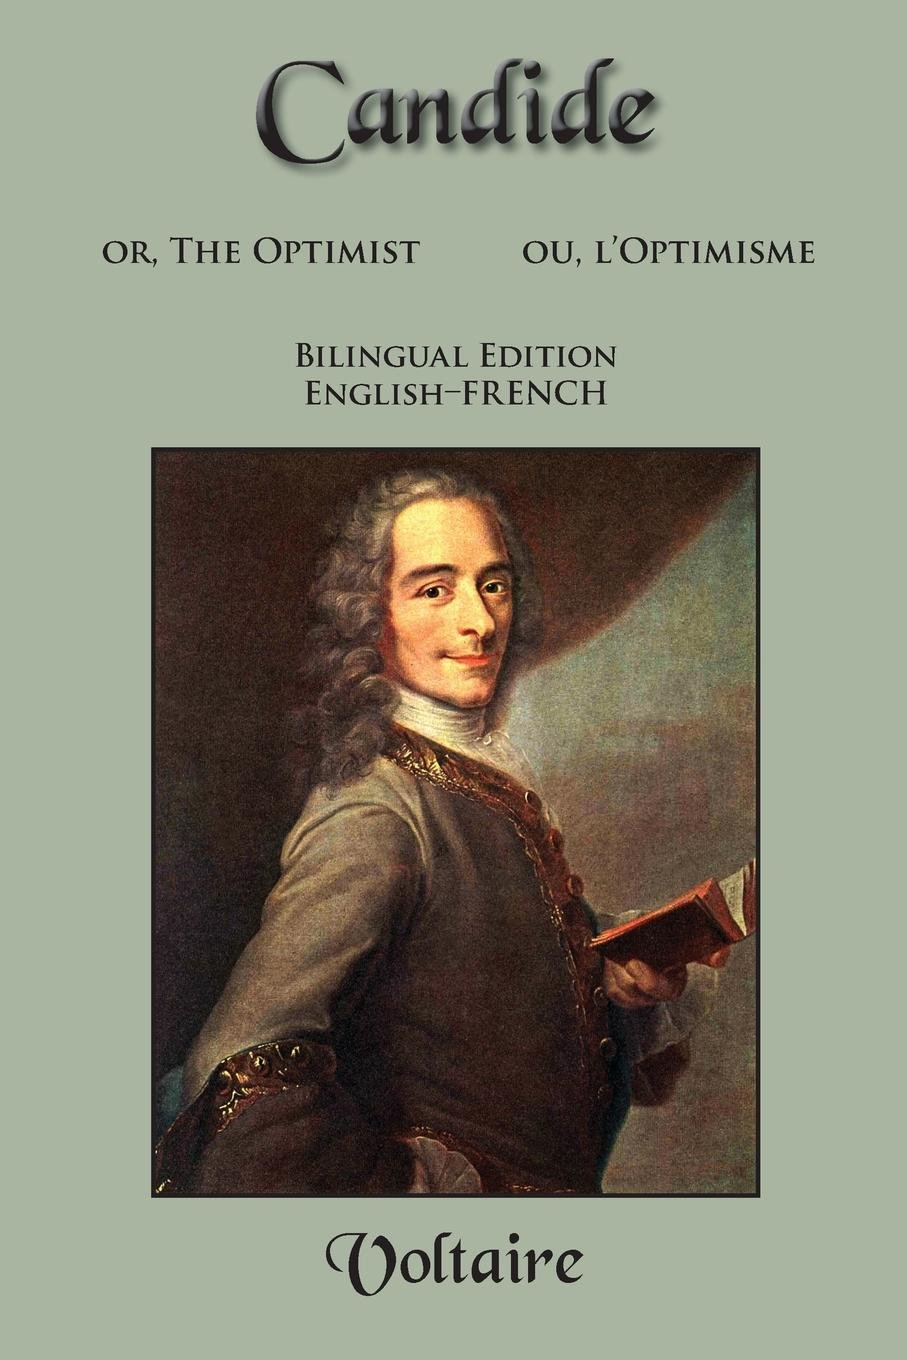 Candide: Bilingual Edition: English-French (English and French Edition) by Sleeping Cat Books